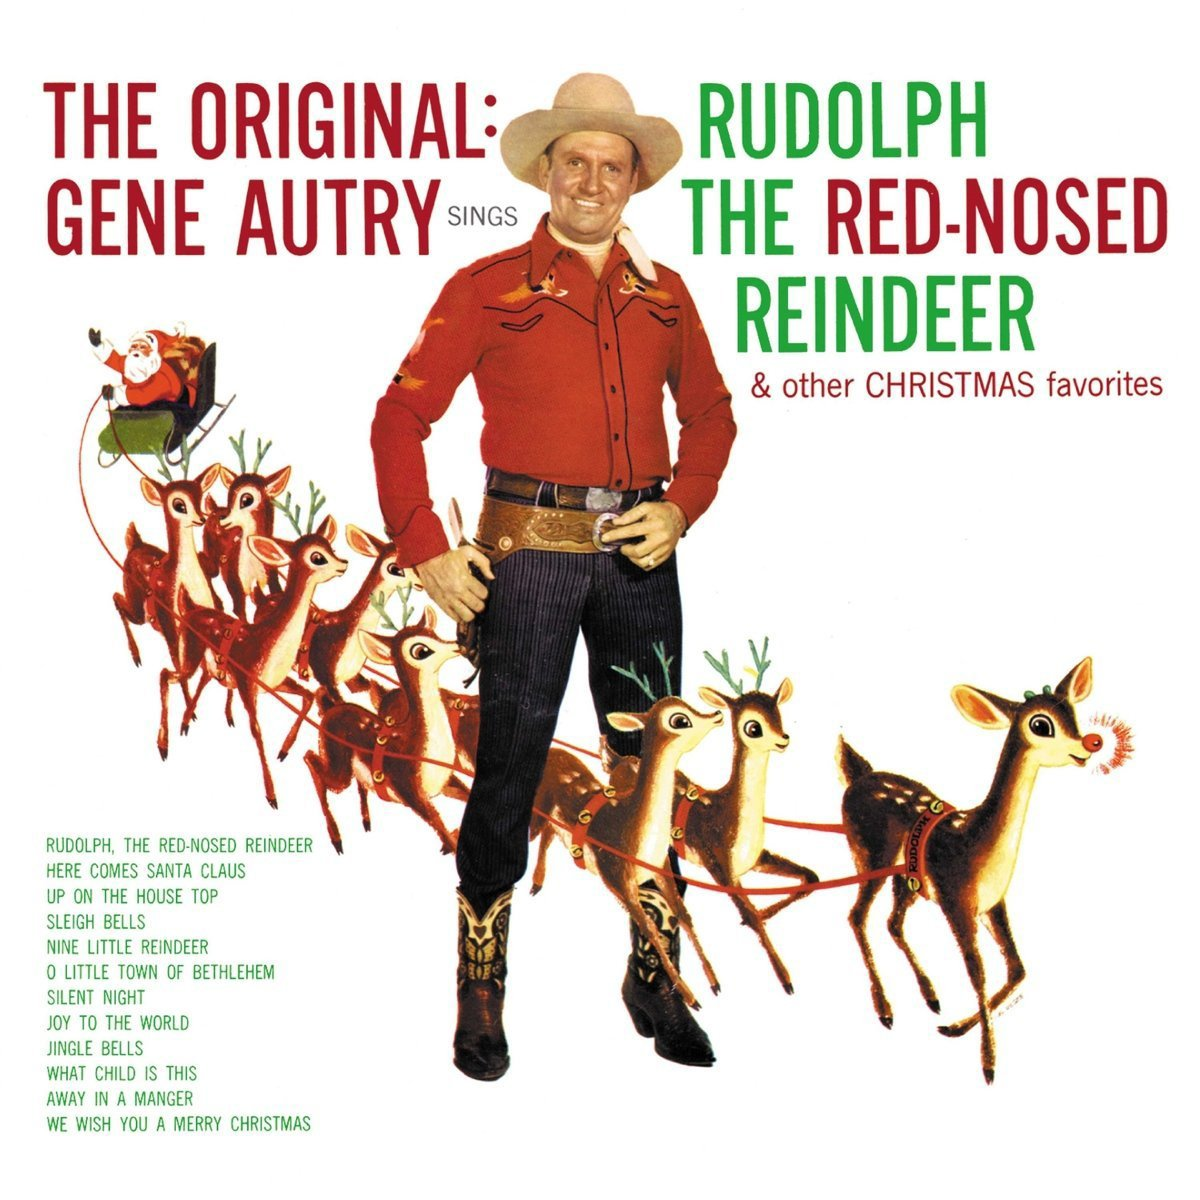 CD : Gene Autry - Rudolph The Red-nosed Reindeer (Remastered, Restored)